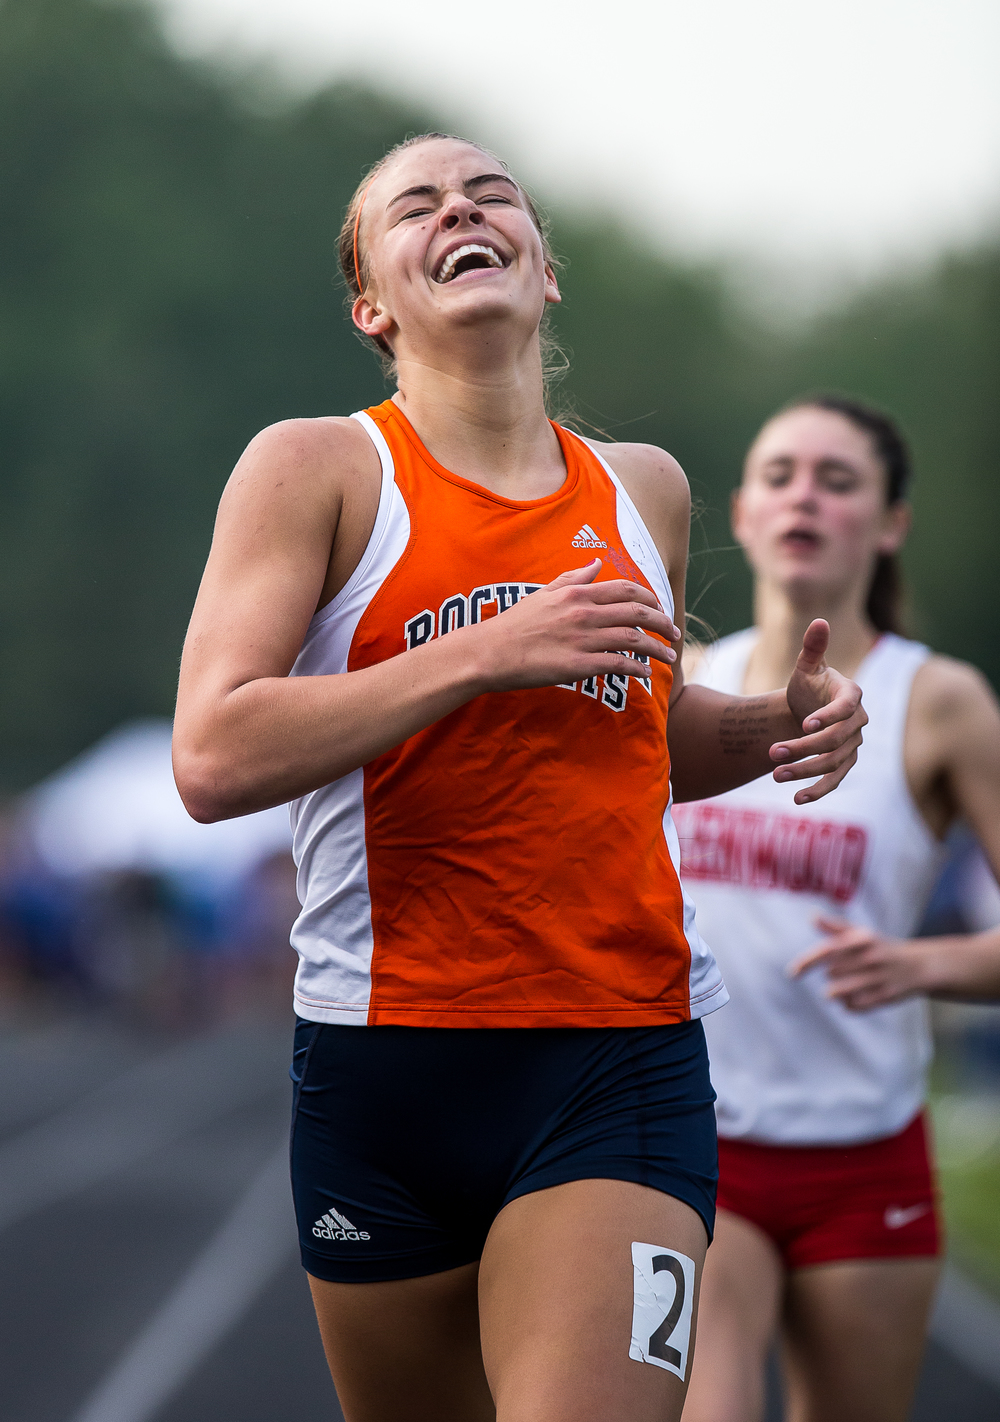 Rochester's Meagan McNicholas reacts after coming from behind to beat Glenwood's Erica Rideout in the Girls 800m Run during the Girls Class 2A Sectional Track Meet at  Southeast High School, Thursday, May 14, 2015, in Springfield, Ill. Justin L. Fowler/The State Journal-Register